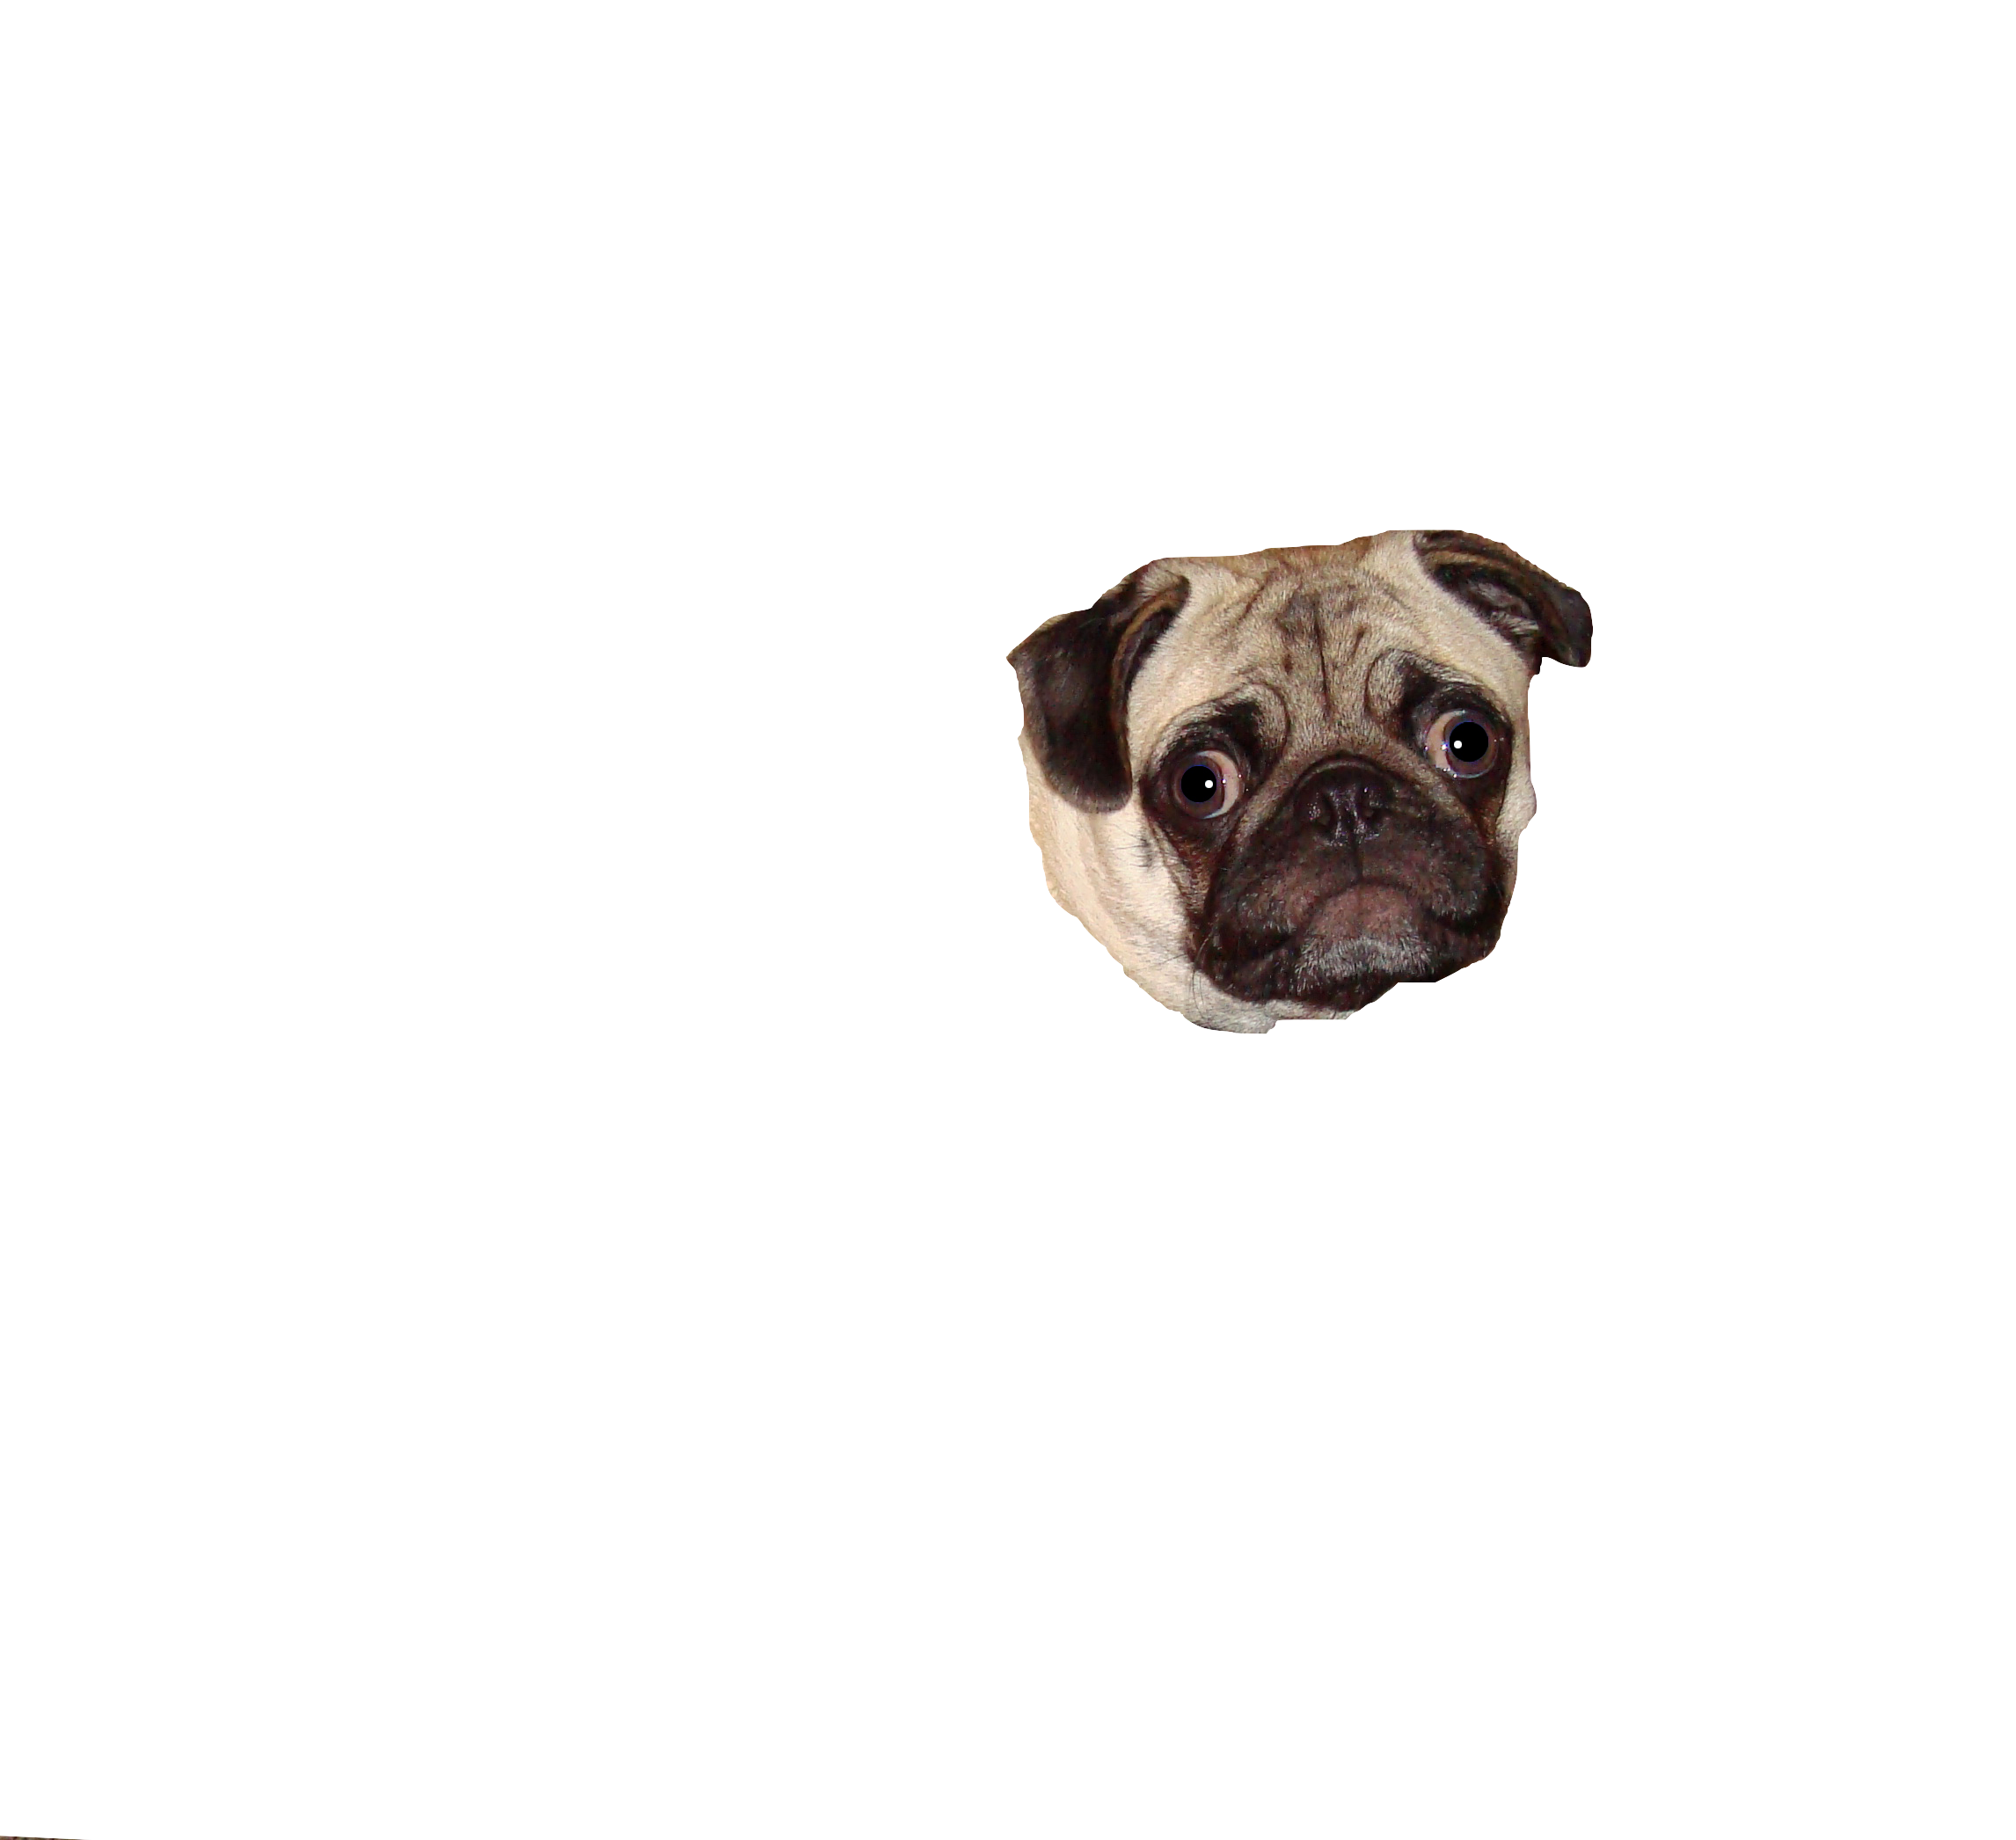 Pug face png. Start off with a